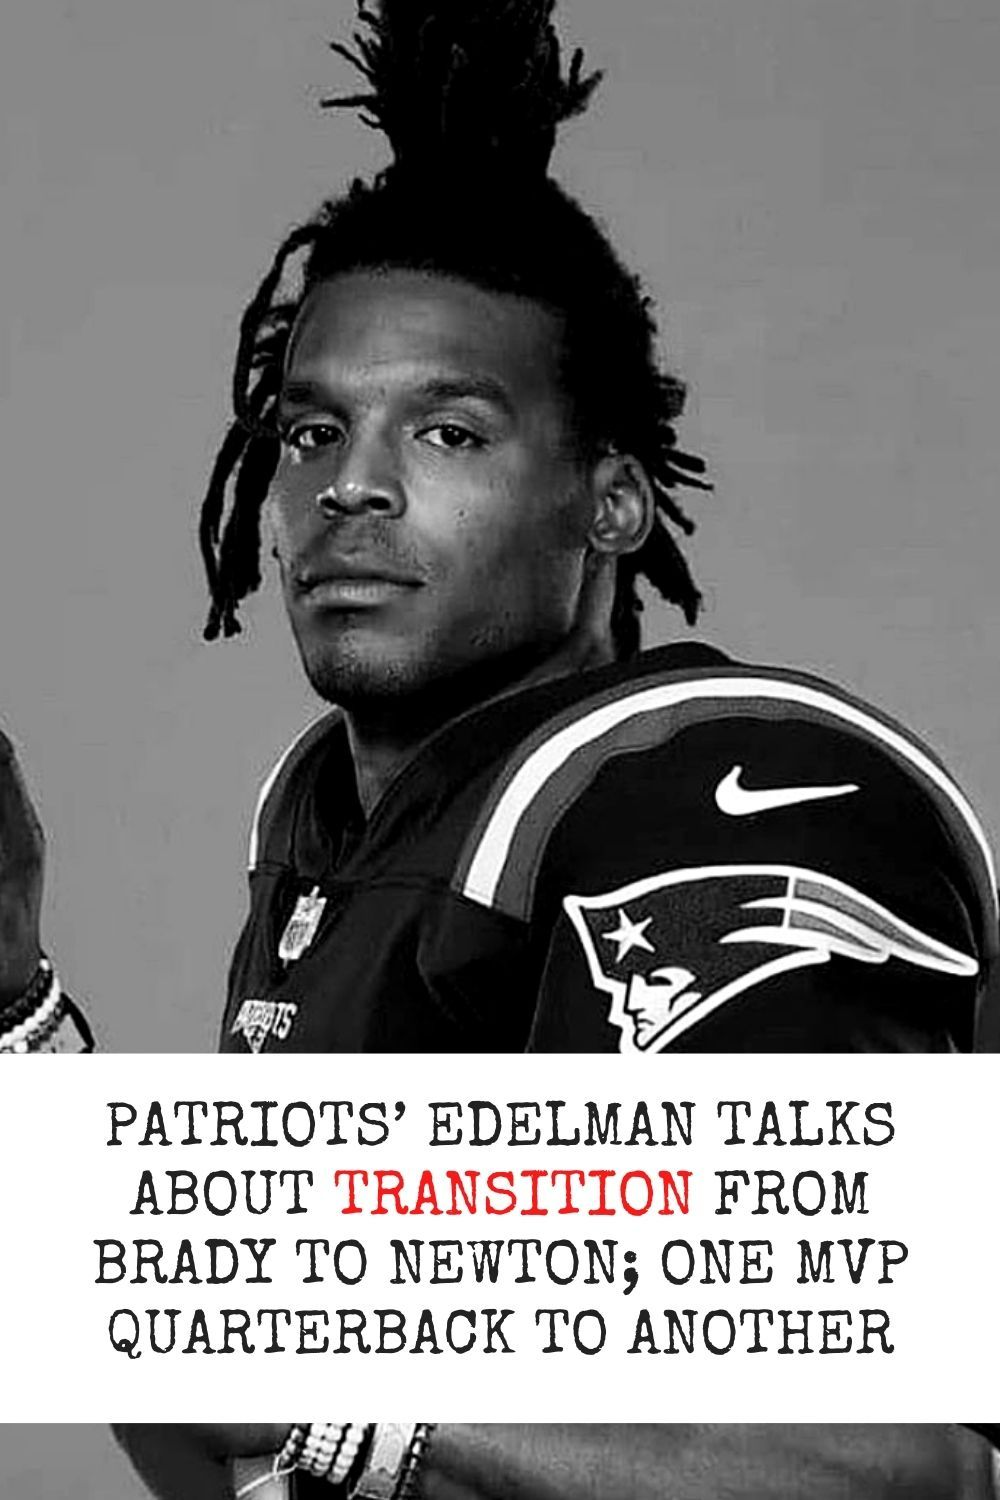 Patriots Edelman Talks About Transition From Brady To Newton One Mvp Quarterback To Another In 2020 Patriots Quarterback New England Patriots